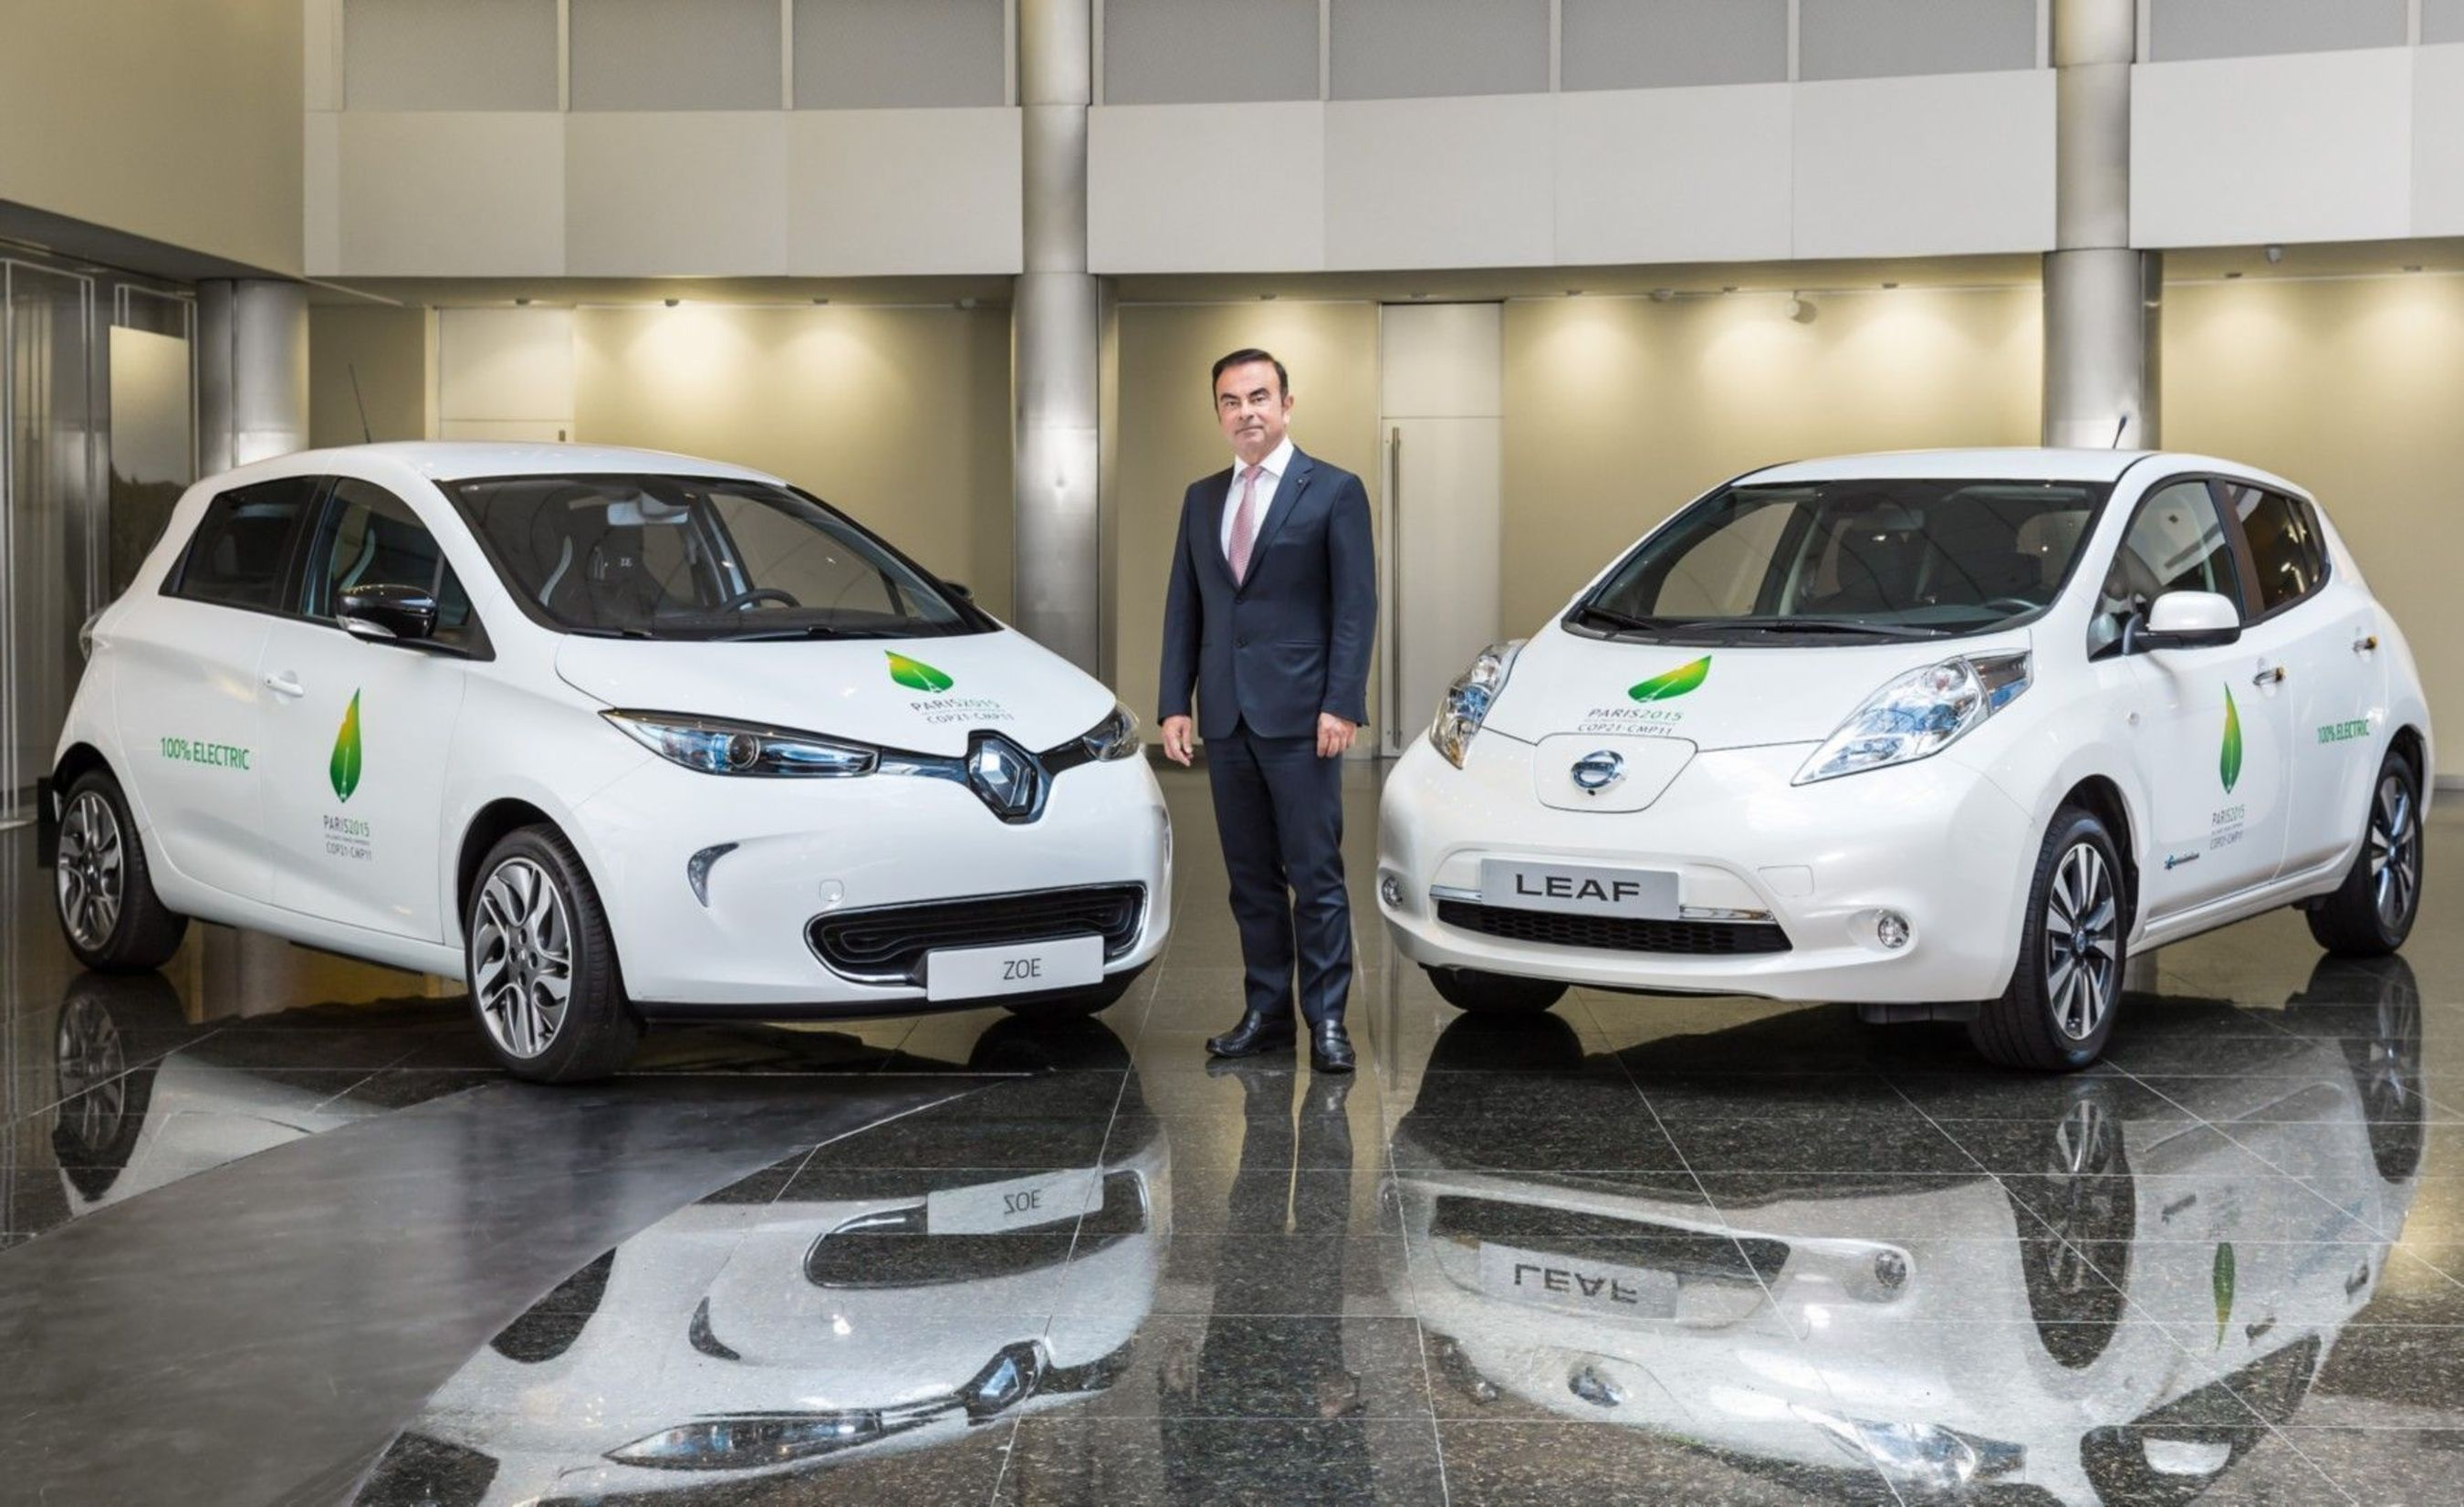 Renault-Nissan Alliance Official COP21 Passenger Car Partner with Zero-Emission Fleet